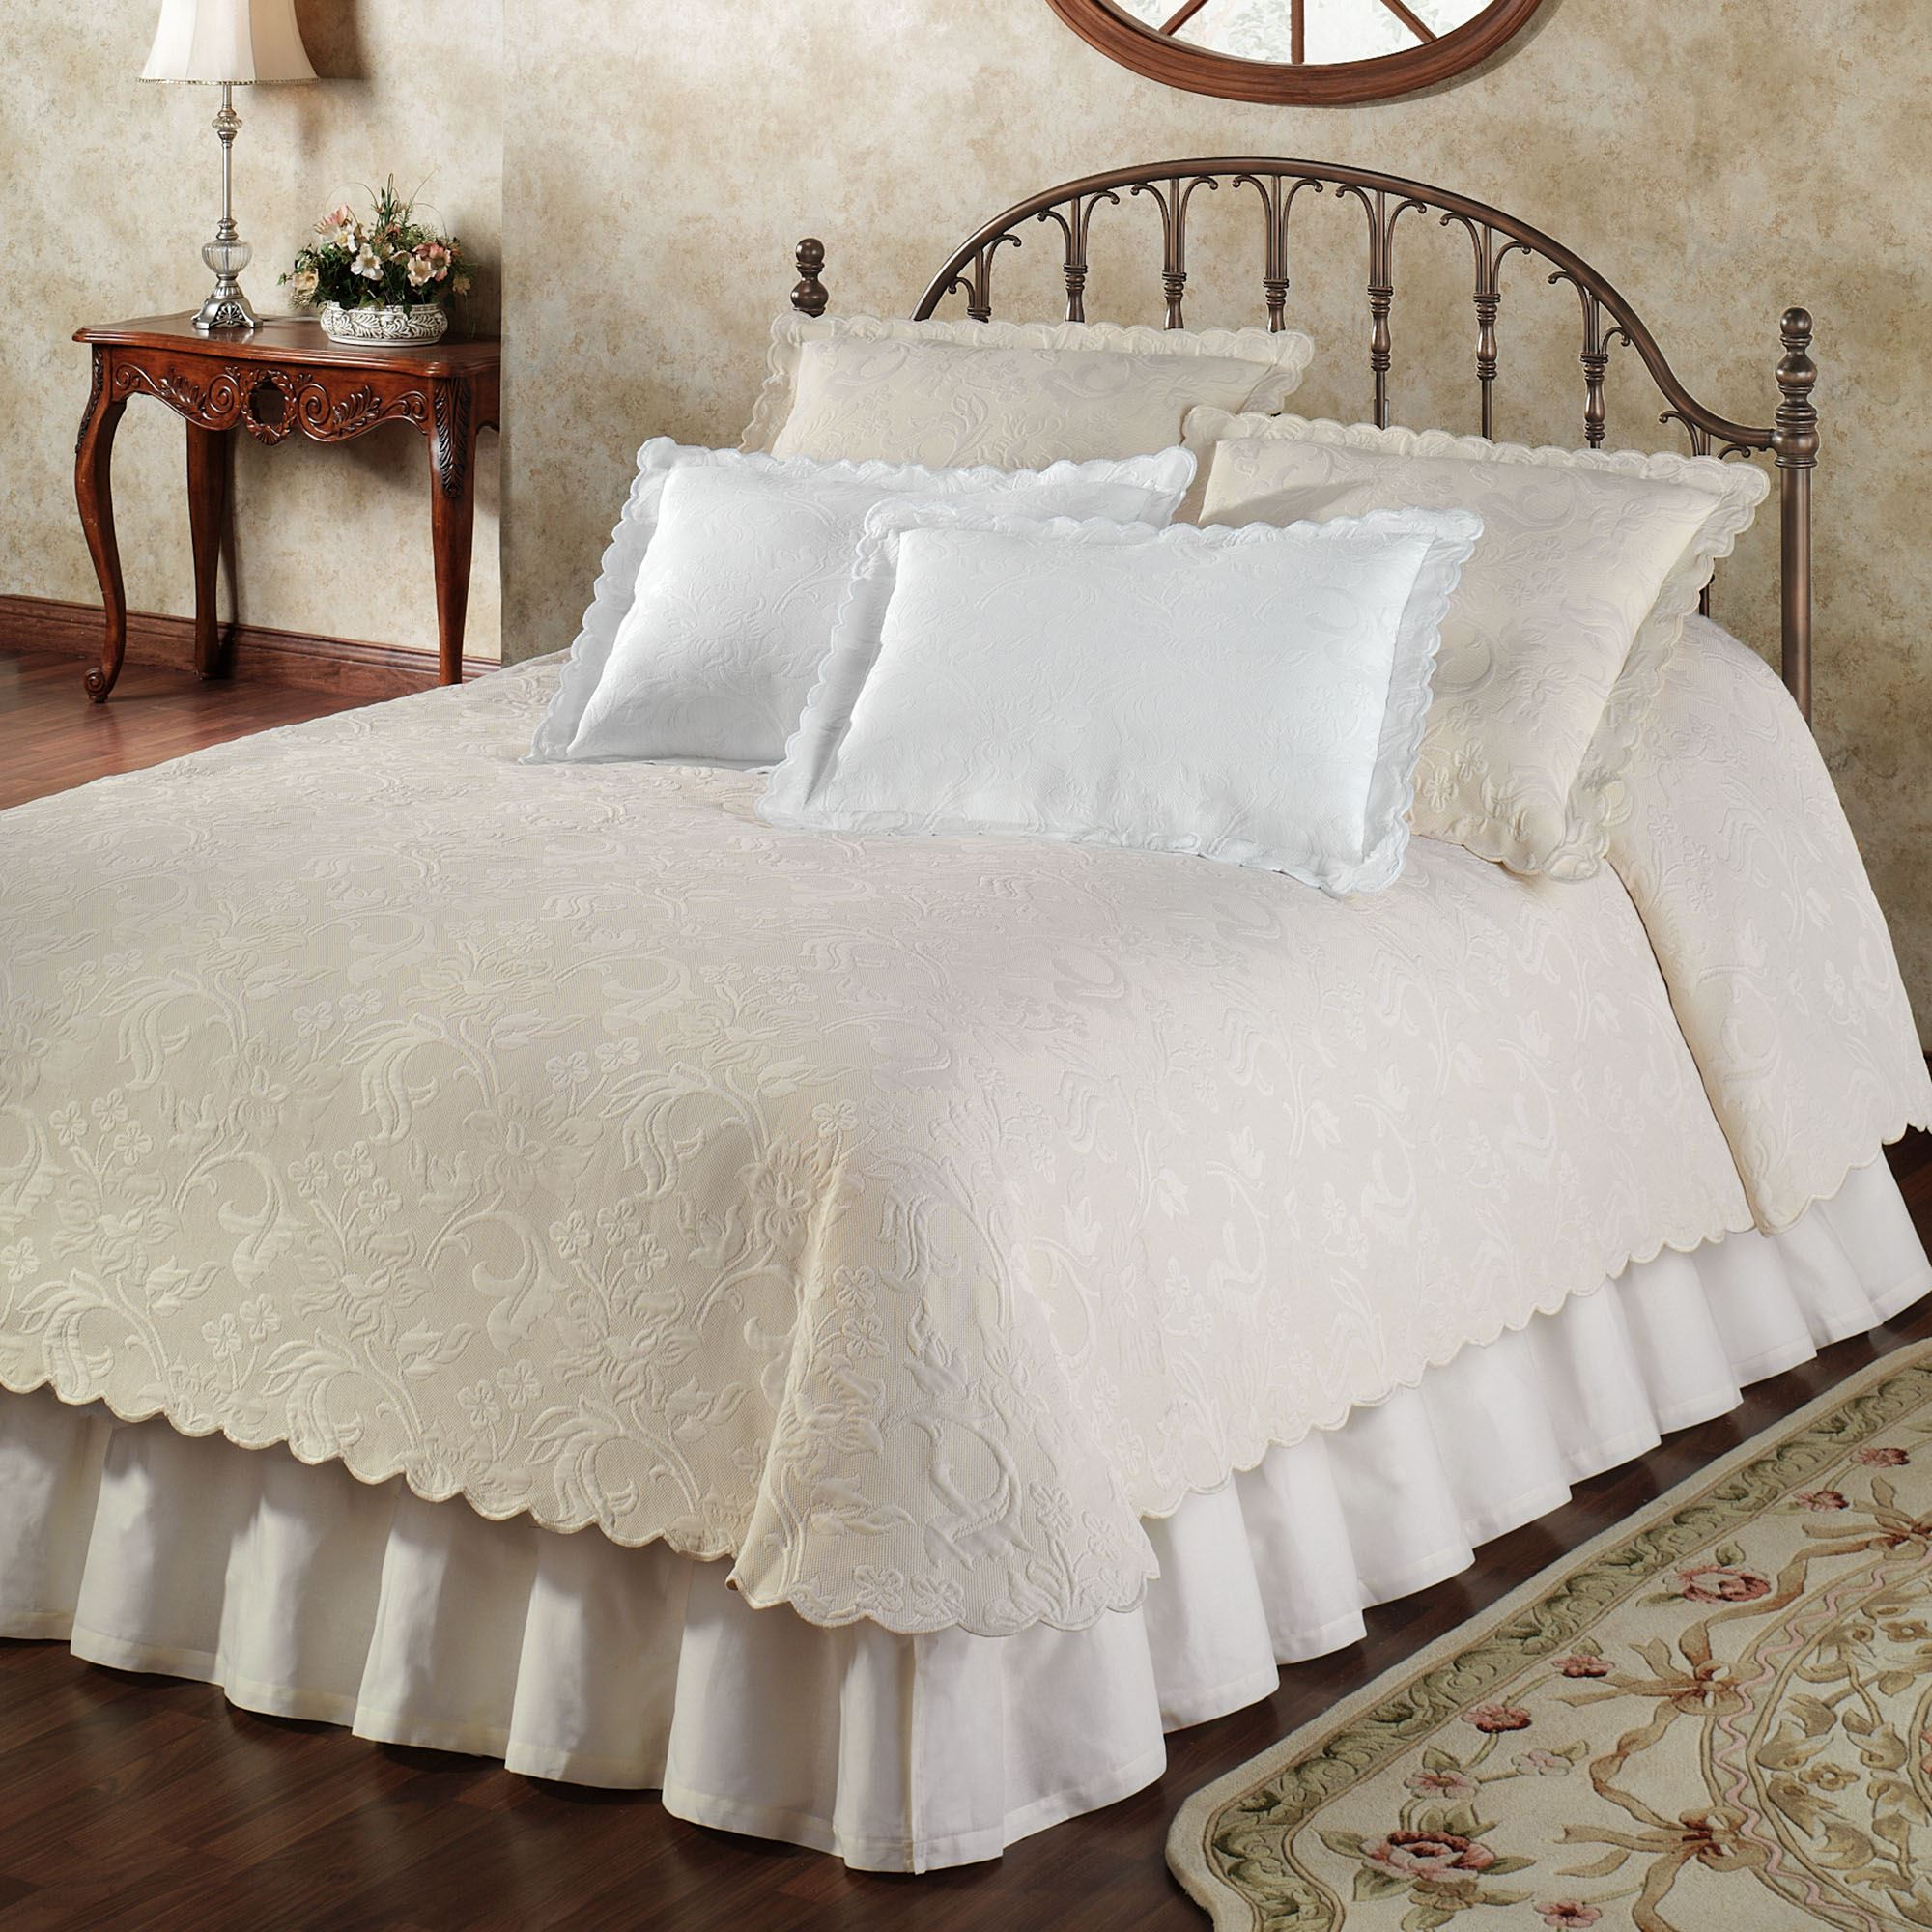 Coverlets For Sale Botanica Woven Matelasse Coverlet Bedding By Belle Epoque